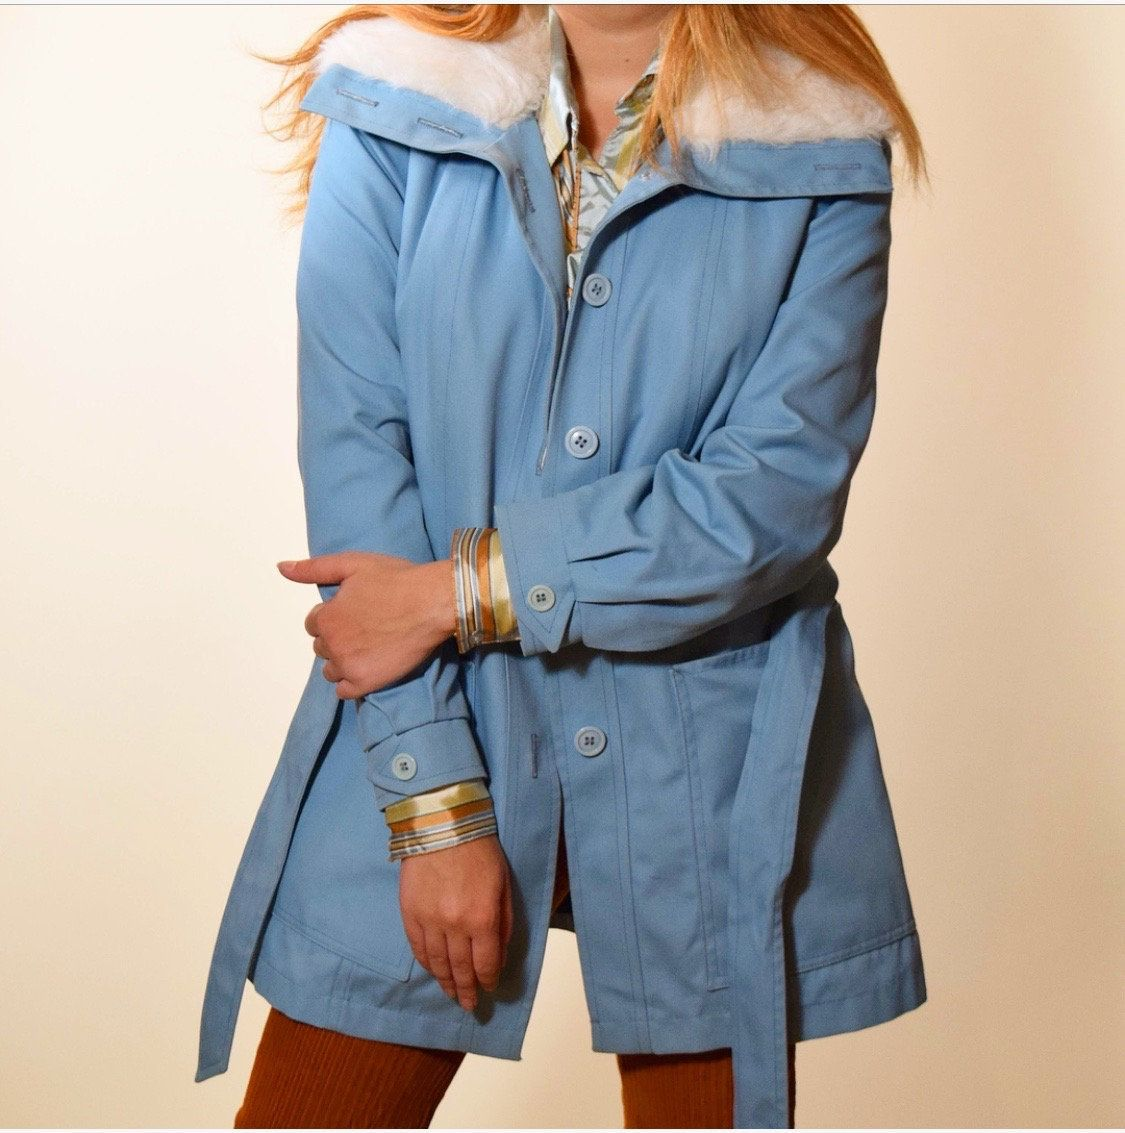 Classic Mod Baby Blue Coat With Faux Fur White Collar Authentic Vintage 1960s Lined With Faux Fur Inside Body Satin Line Baby Blue Coat White Faux Fur Coat